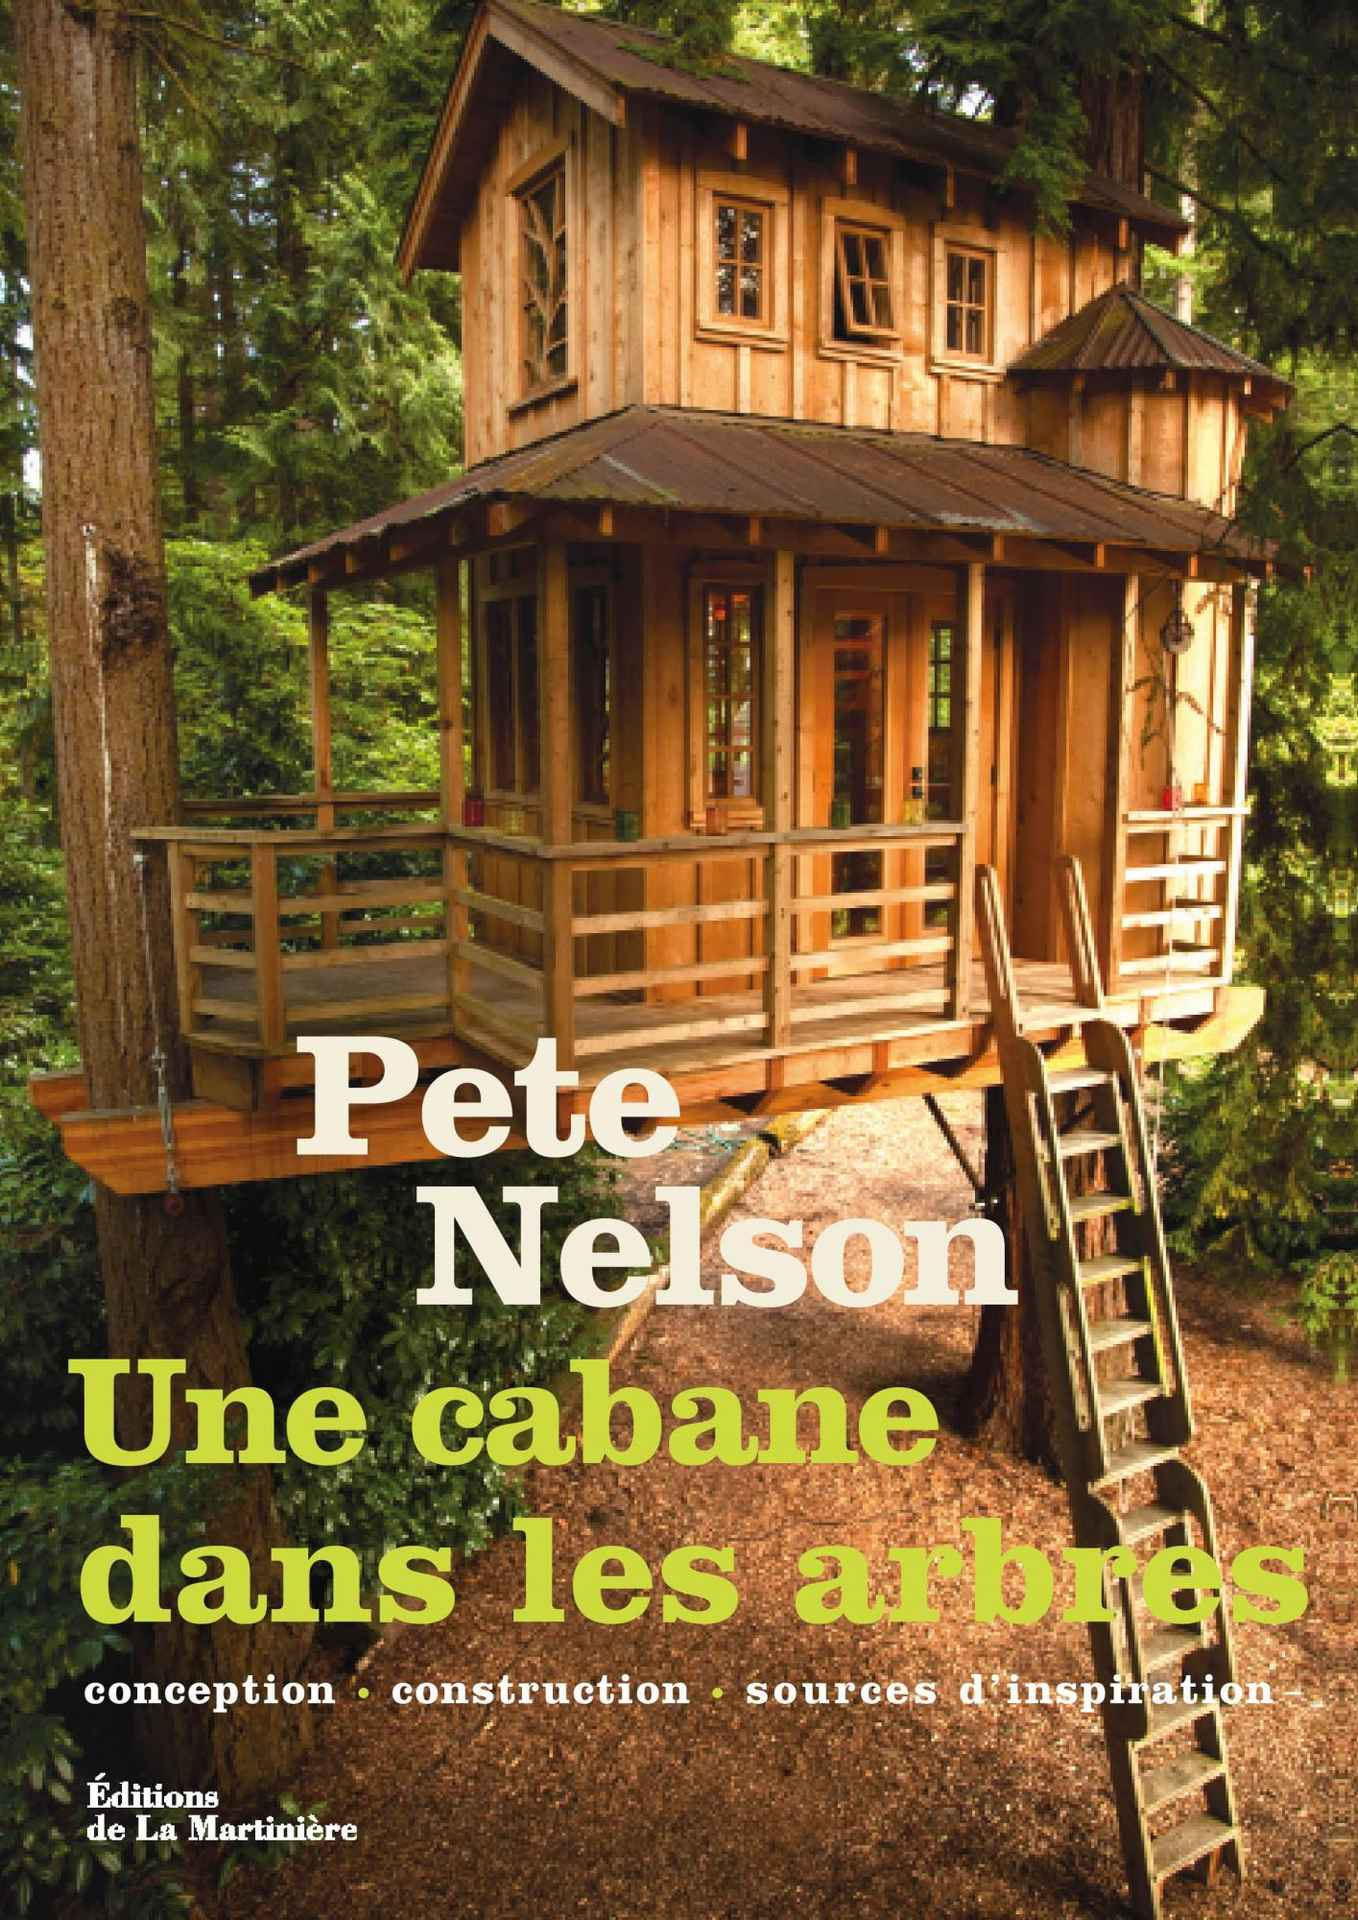 une cabane dans les arbres conception construction sources d 39 inspiration beaux livres. Black Bedroom Furniture Sets. Home Design Ideas